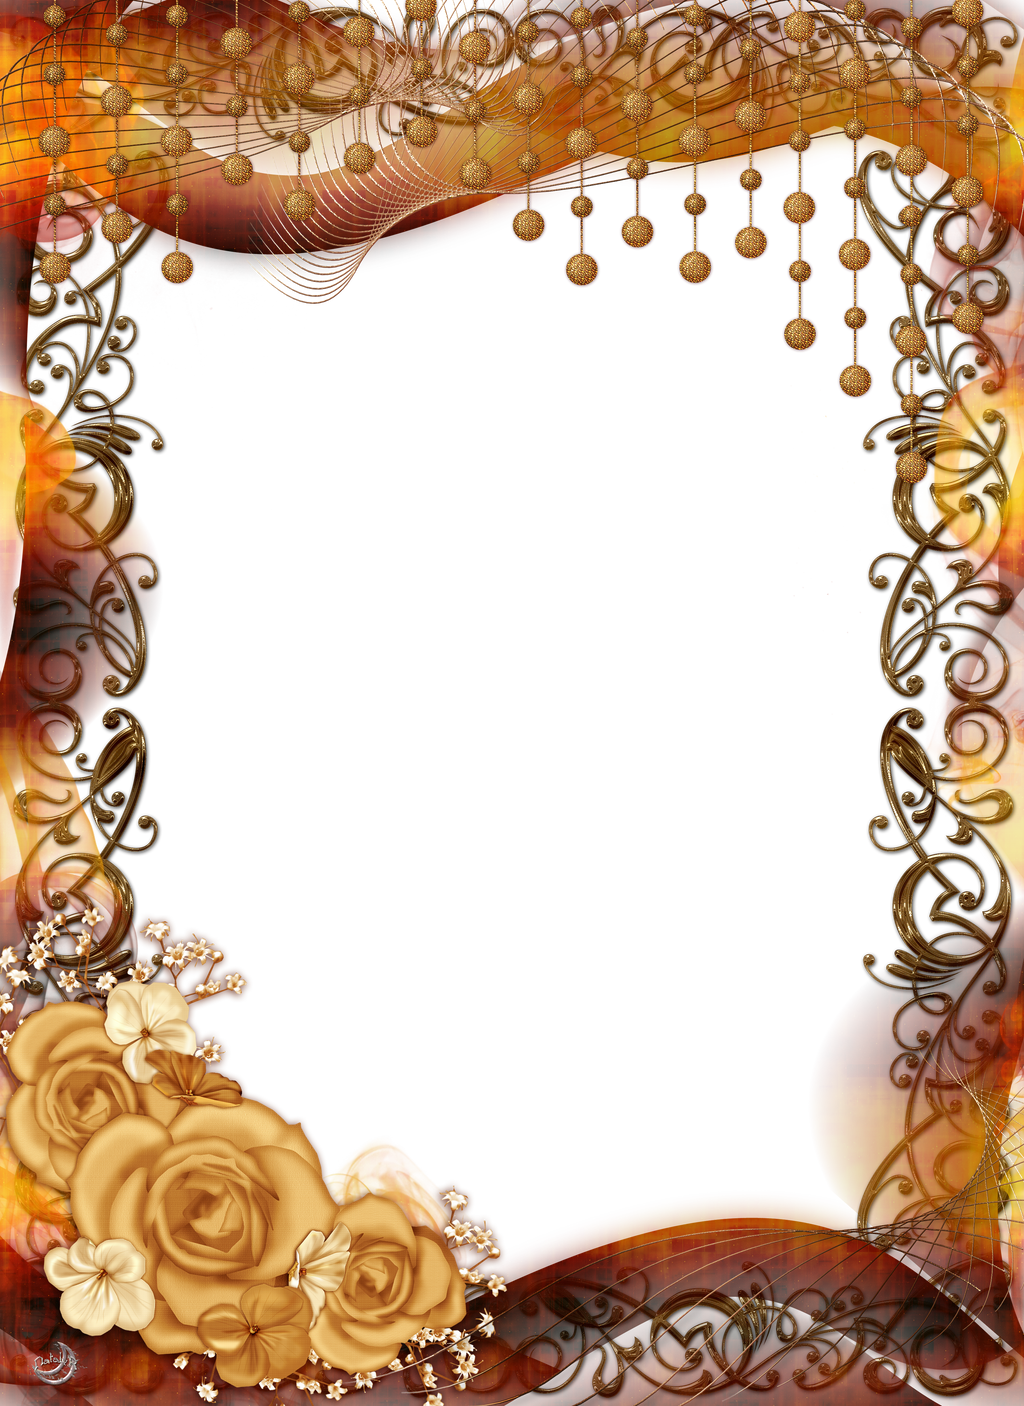 frame with roses and ornaments by Lyotta on DeviantArt